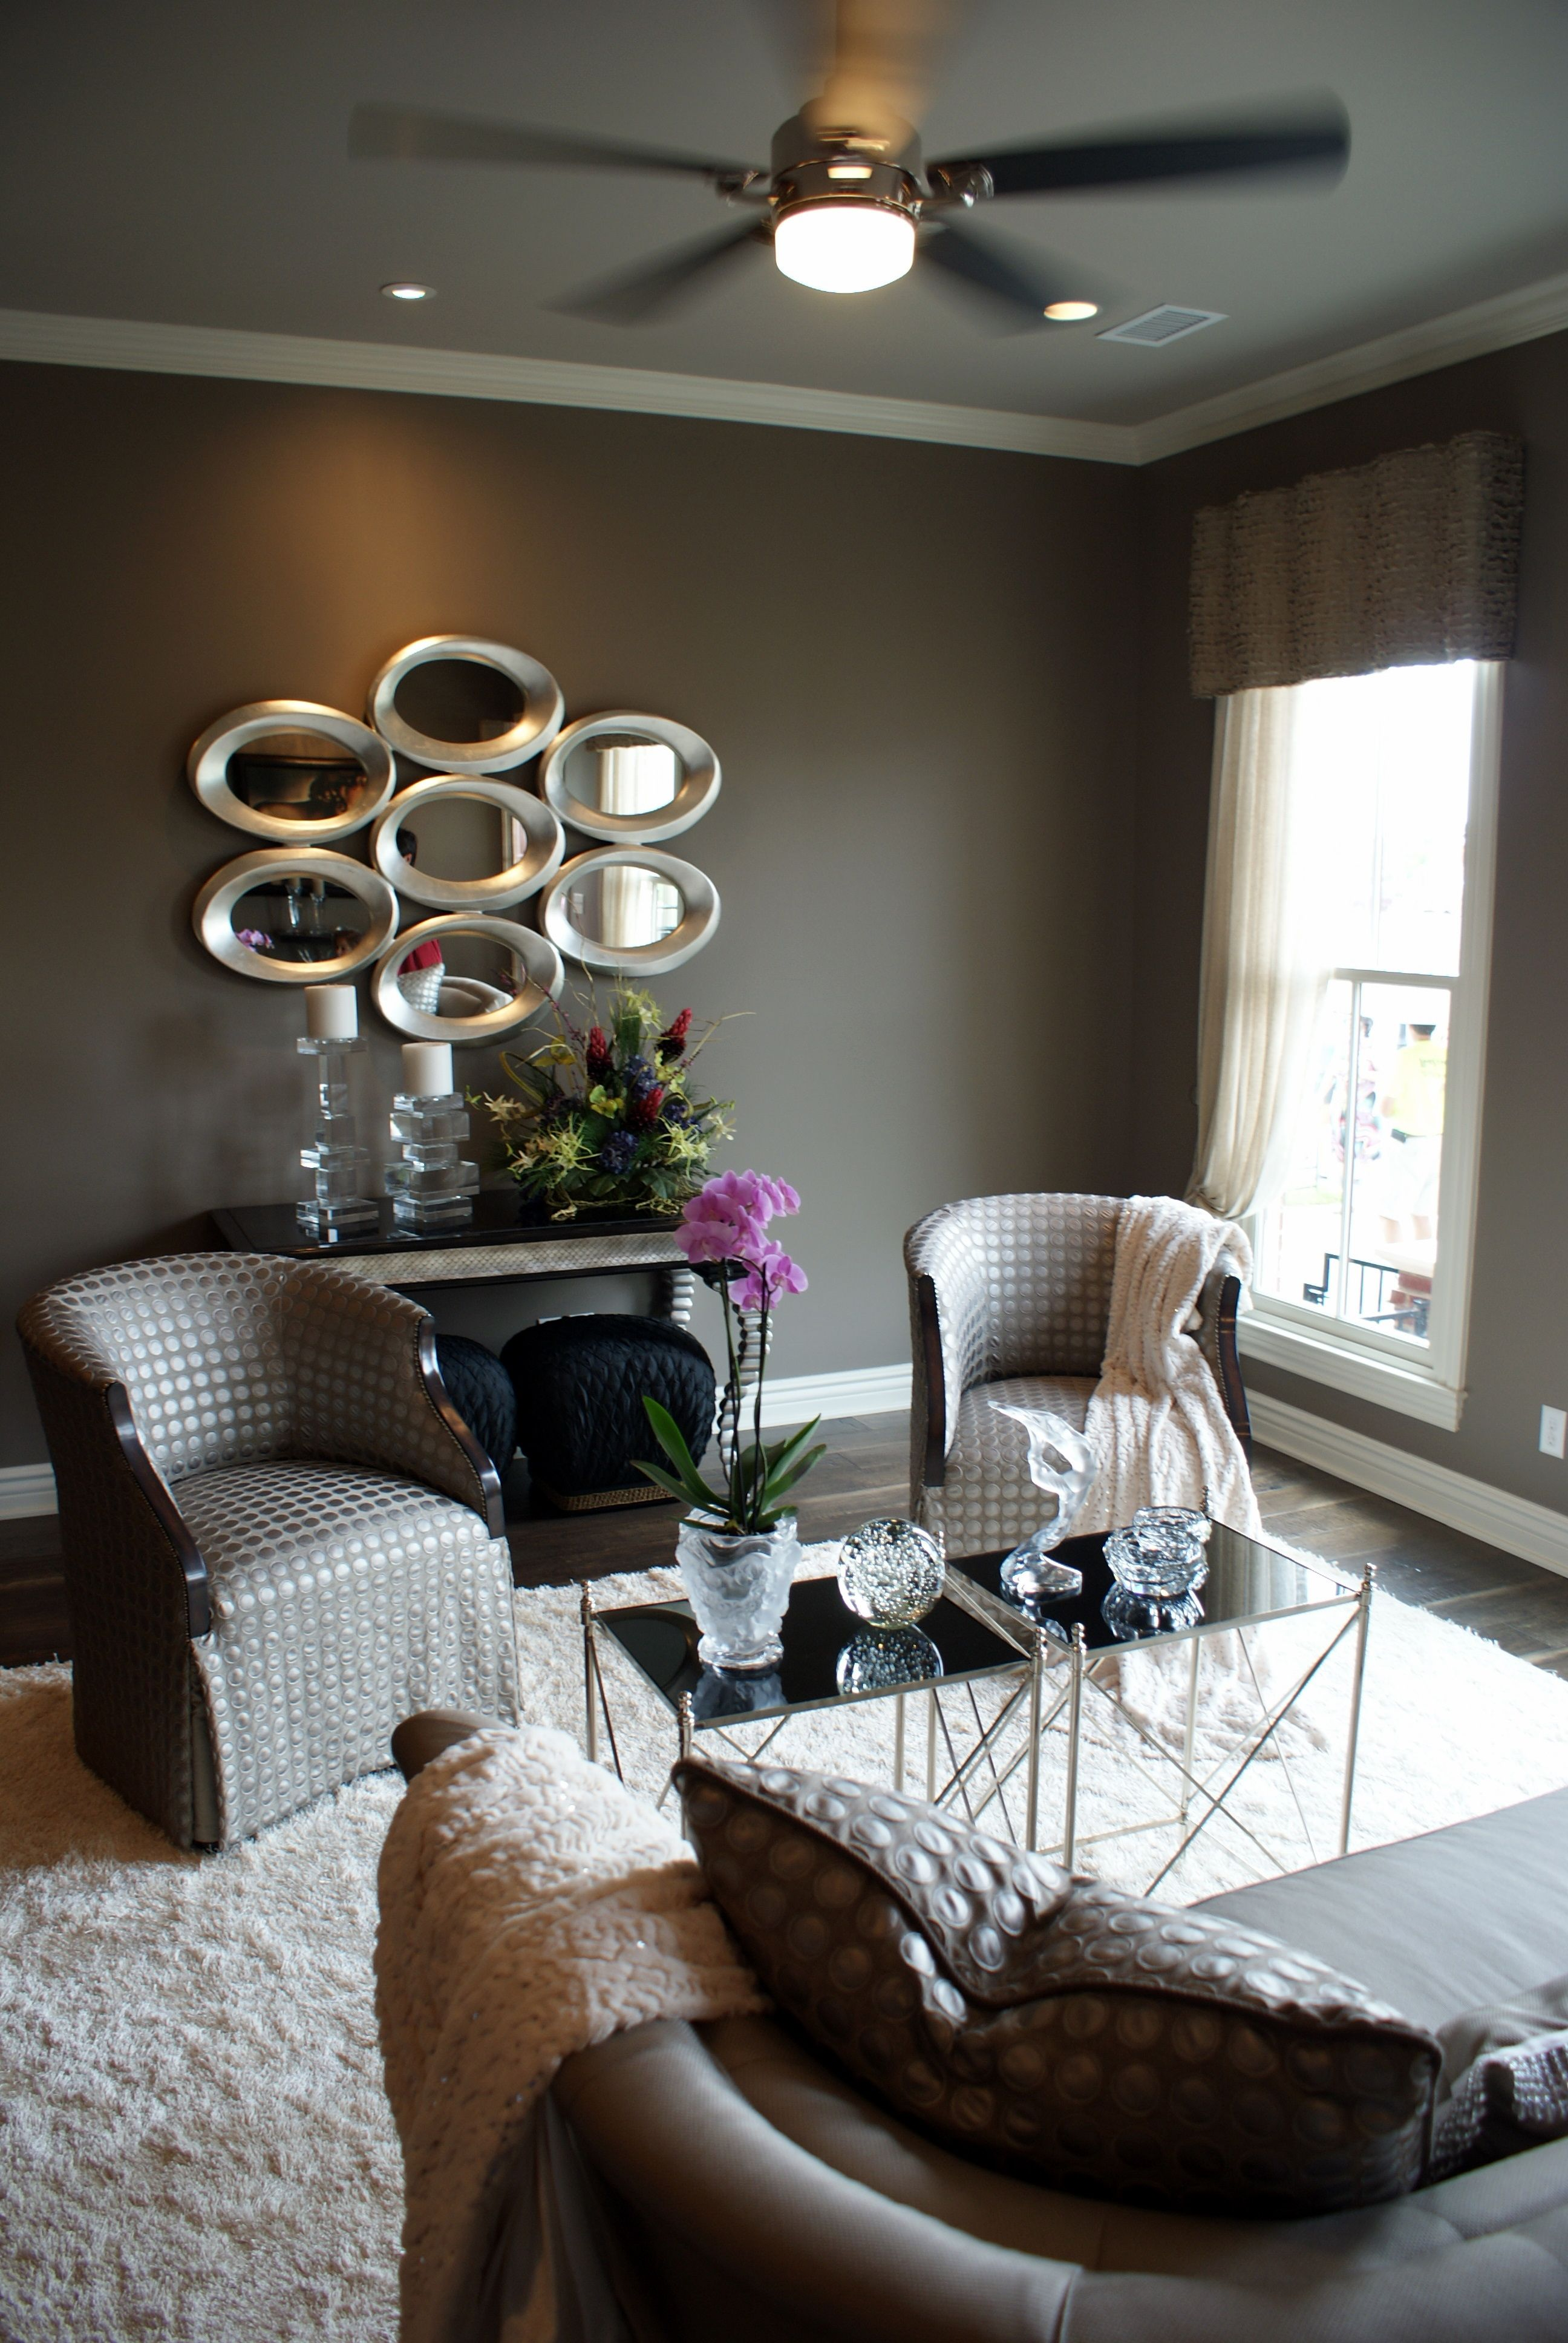 Homearama - Louisville, KY 2011 Norton Commons | My old ...